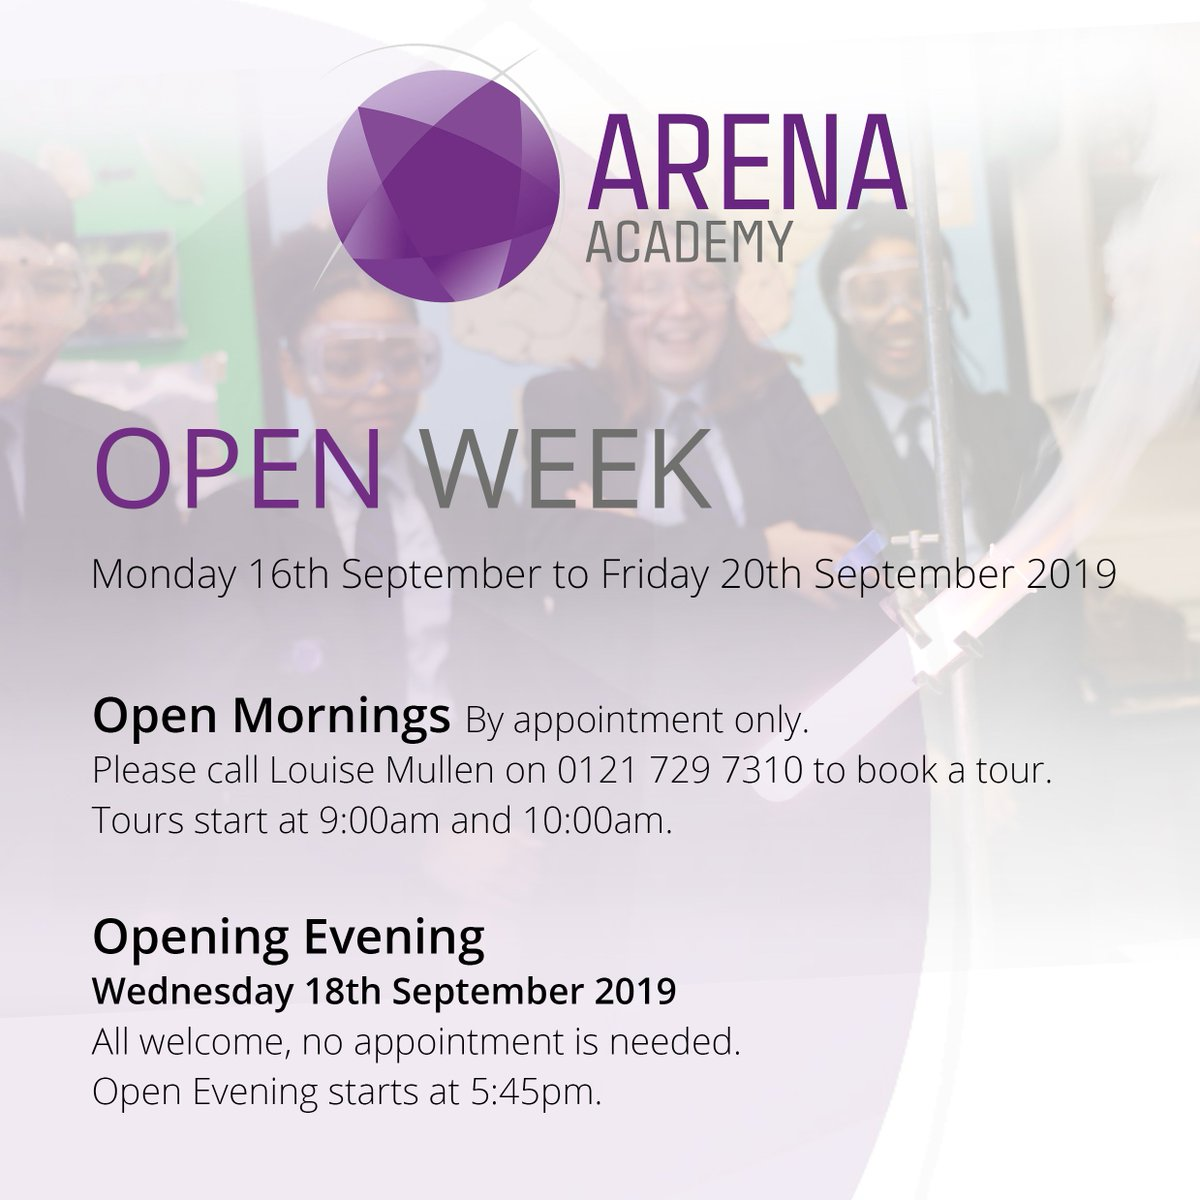 We look forward to welcoming prospective parents and students to Arena Academy next week. There is still time to book Morning Tours next week. All welcome! Thank you